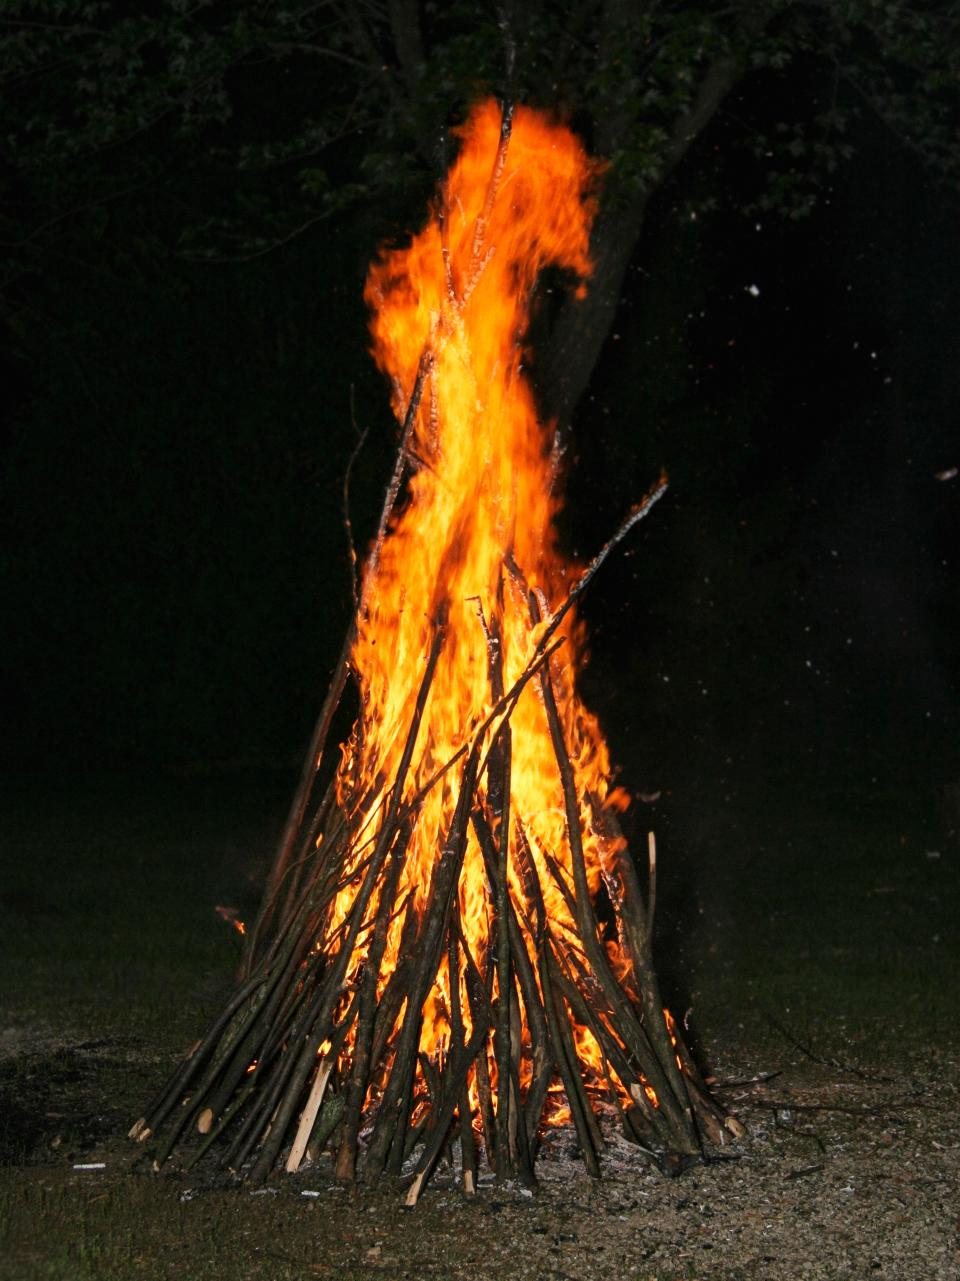 The first bonfires were lit as a celebration of the fact that the king had survived the assassination attempt